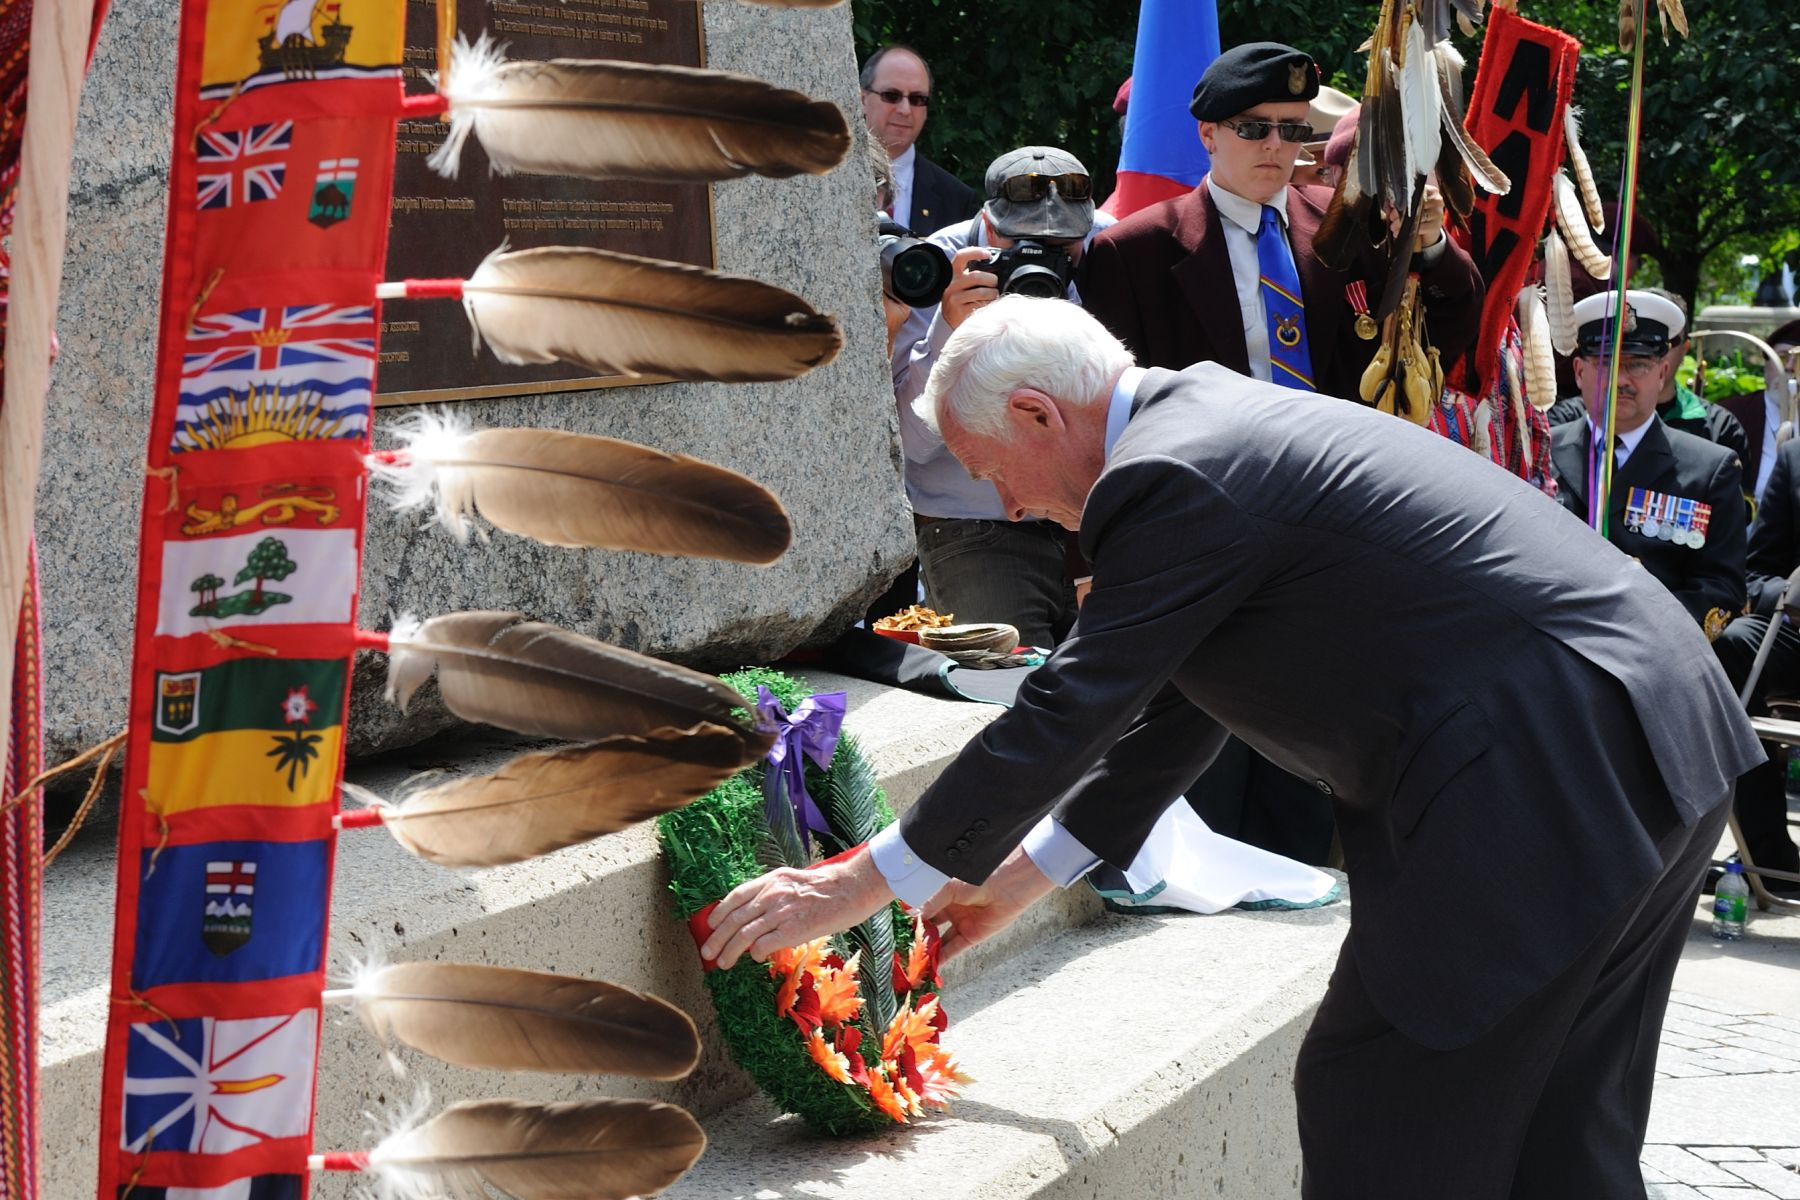 The monument and commemorative ceremony honour the contributions of thousands of Aboriginal veterans who gave their lives for their country, and all those who have served throughout Canada's military history.